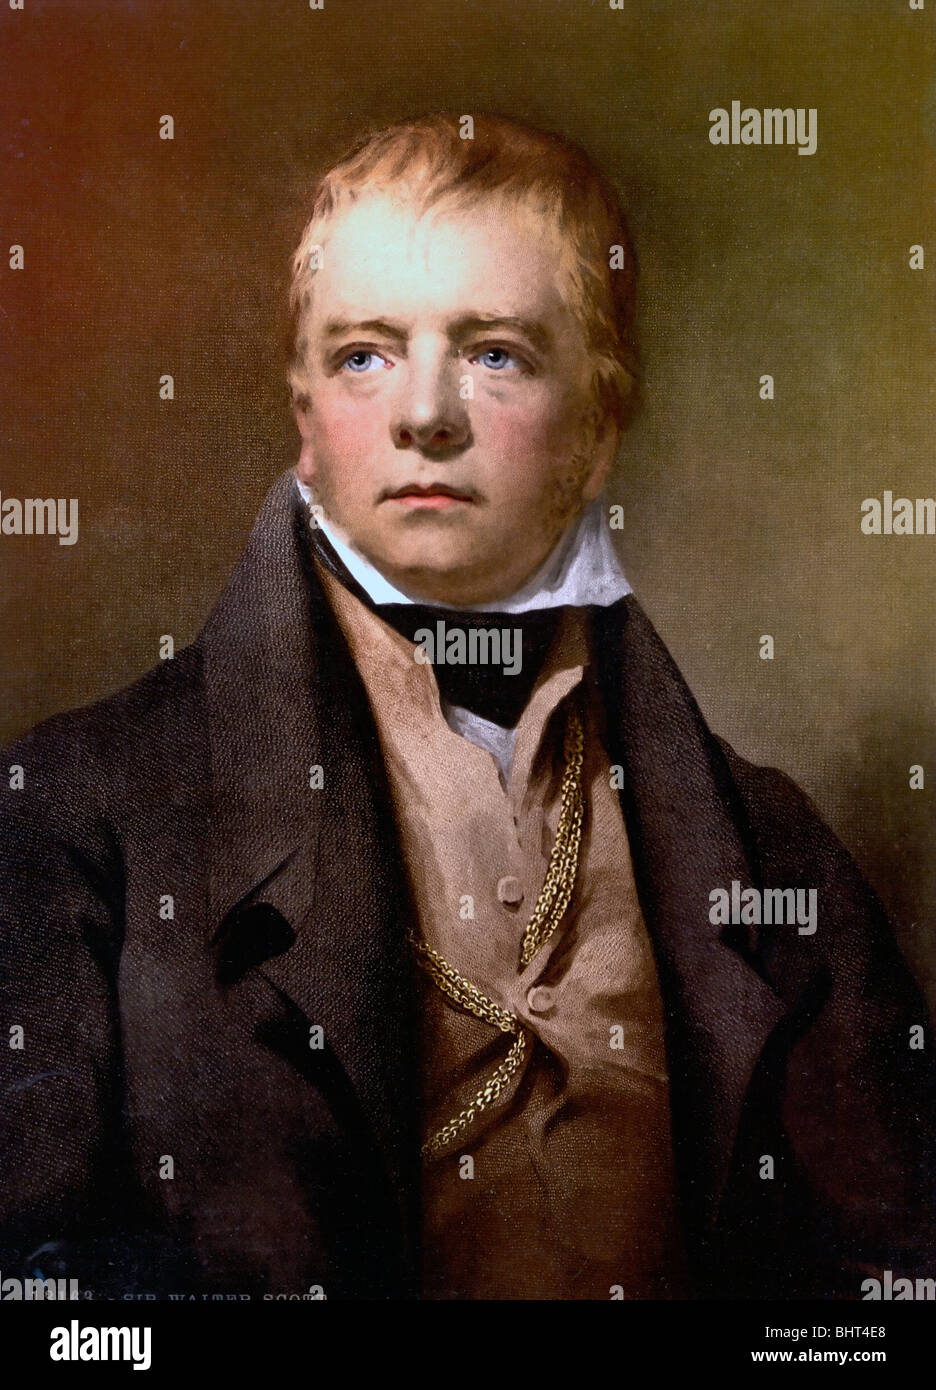 Portrait of Sir Walter Scott (1771-1832), Scottish writer and poet and one of the greatest historical novelists. - Stock Image